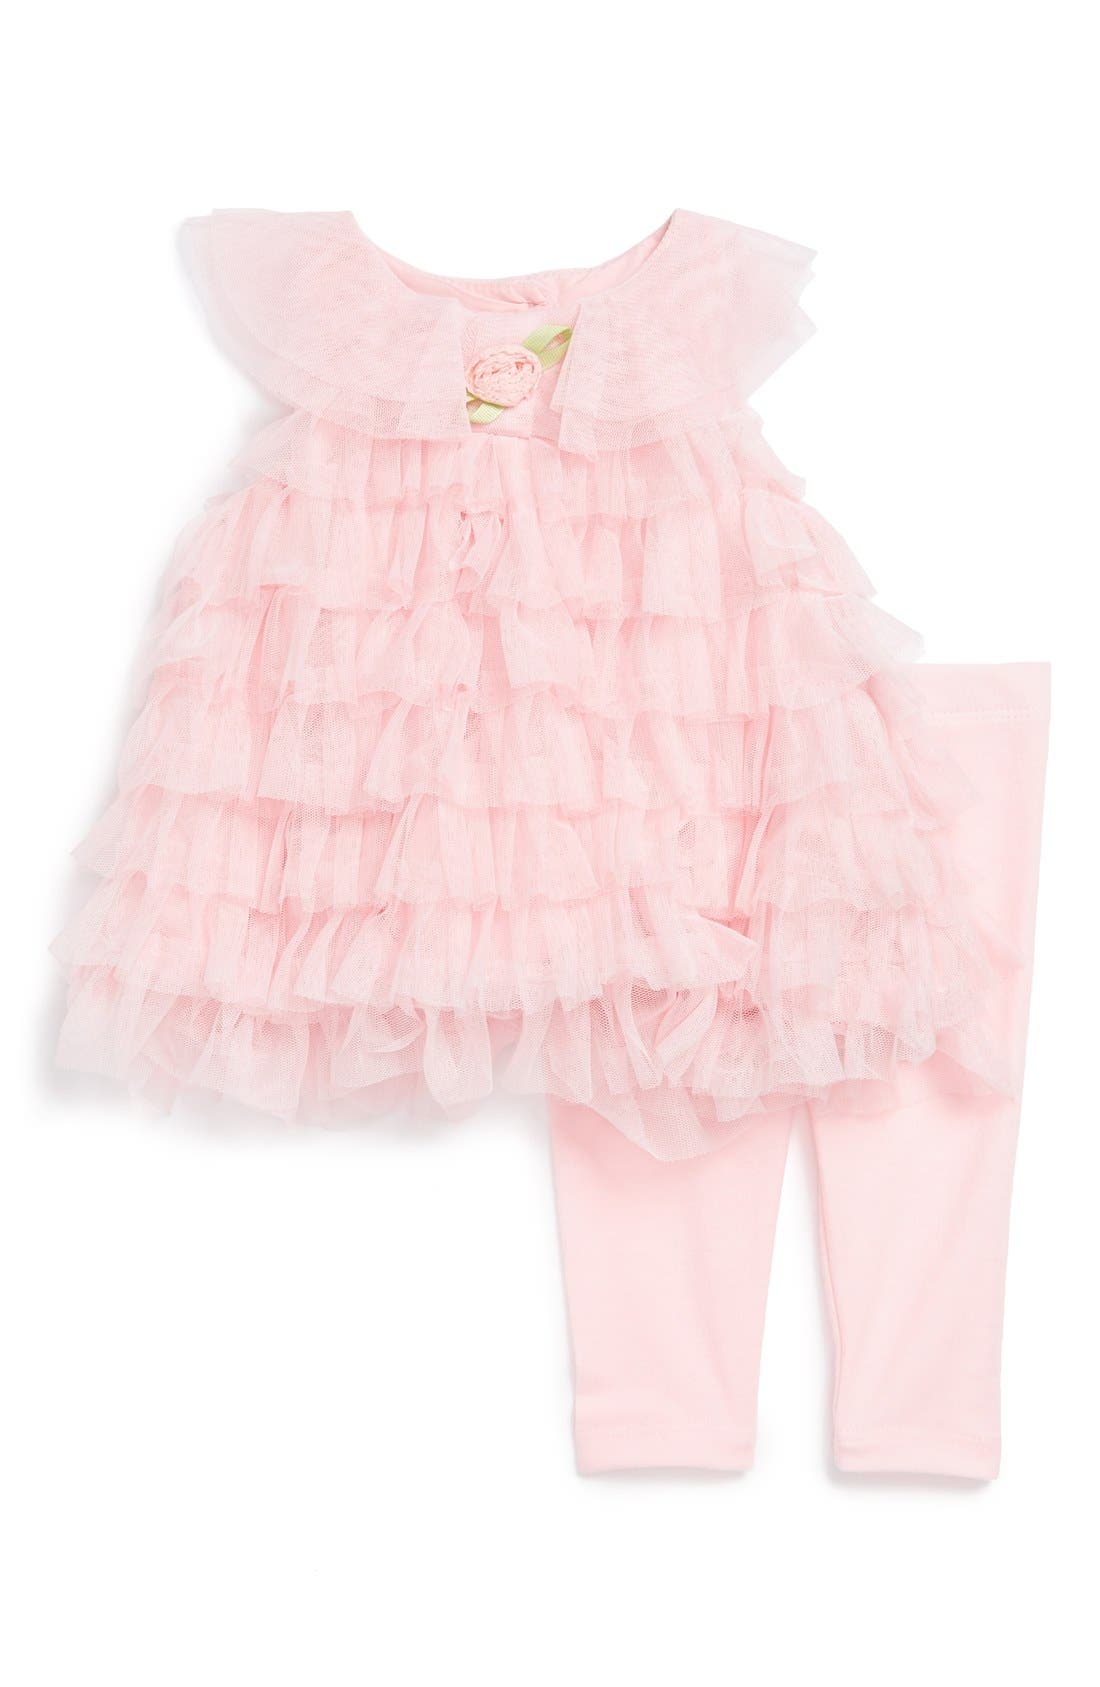 Alternate Image 1 Selected - Pippa & Julie Ruffle Dress & Leggings (Baby Girls)